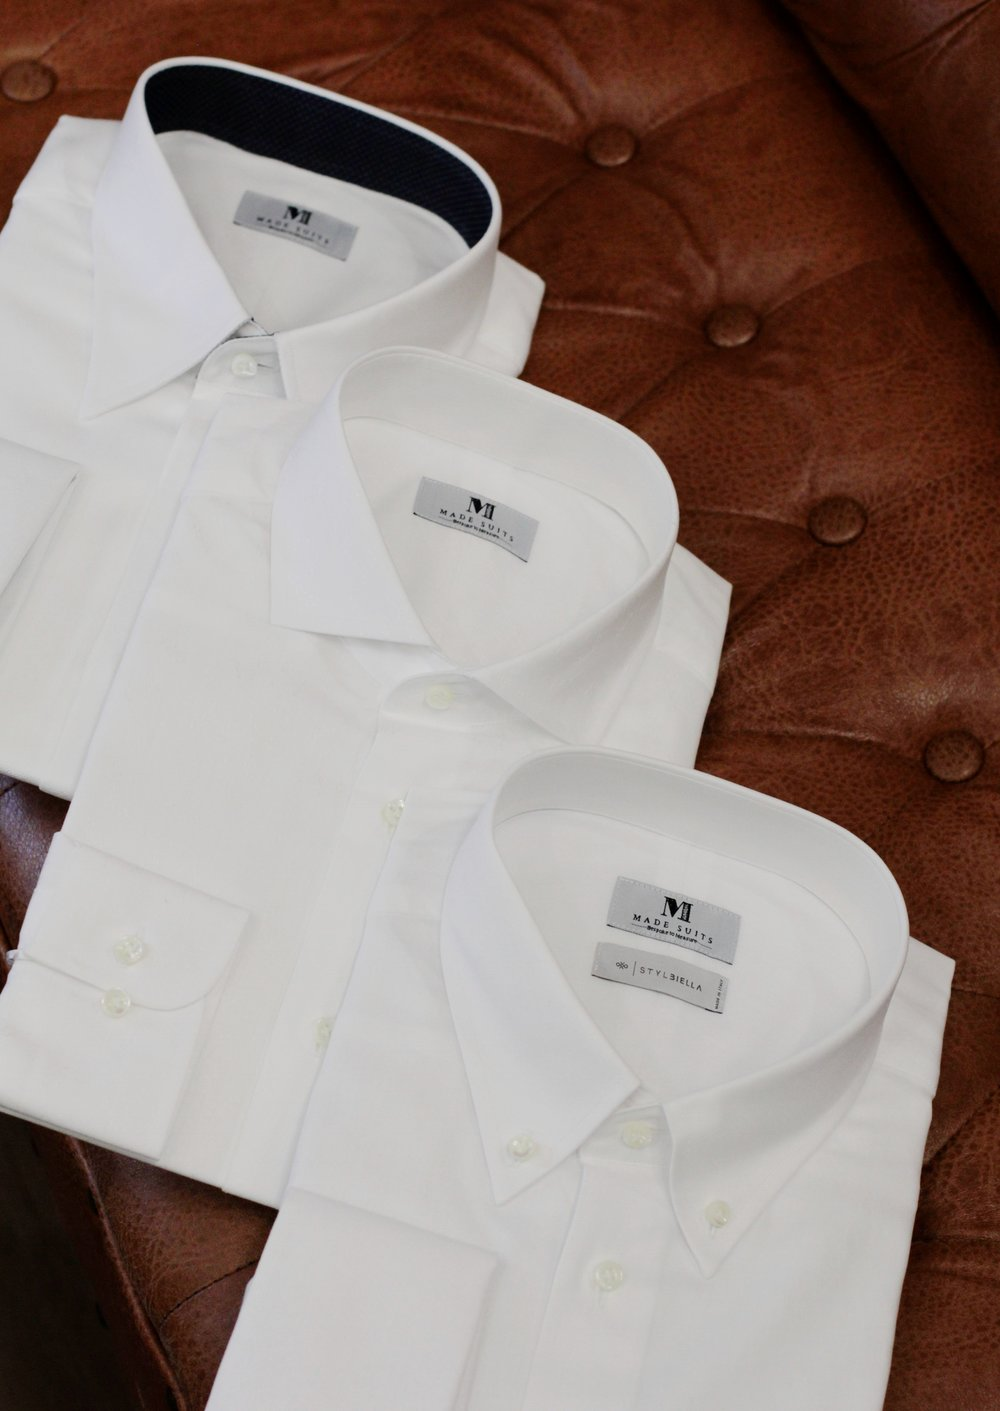 Crisp white shirts are a need for all gentlemen's wardrobe  (one can never had enough of whites)